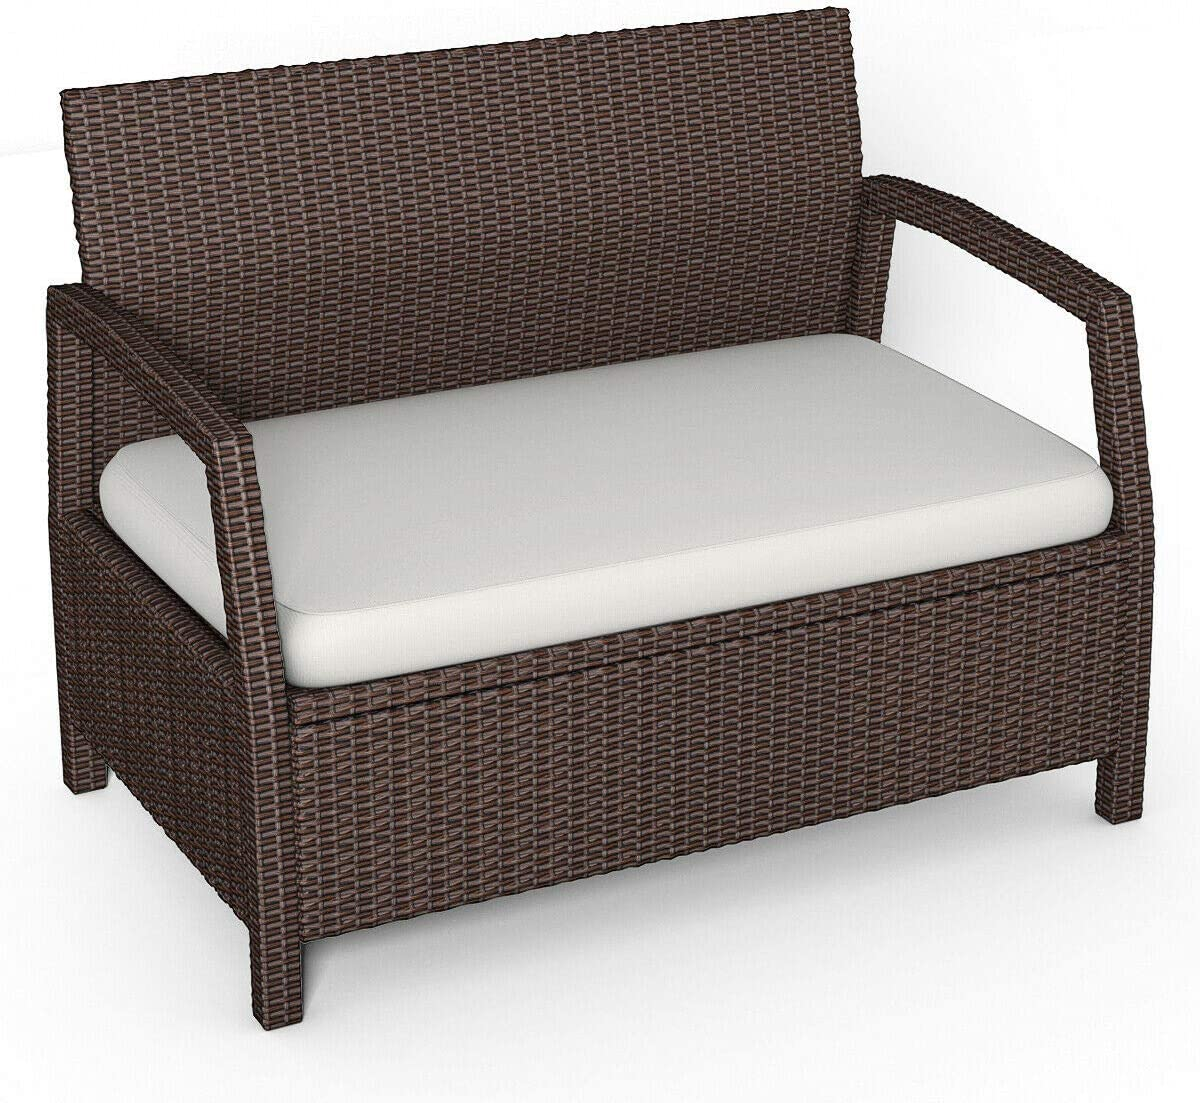 Tangkula Bench Couch Chair Patio Furniture Sofas, Brown: Kitchen & Dining